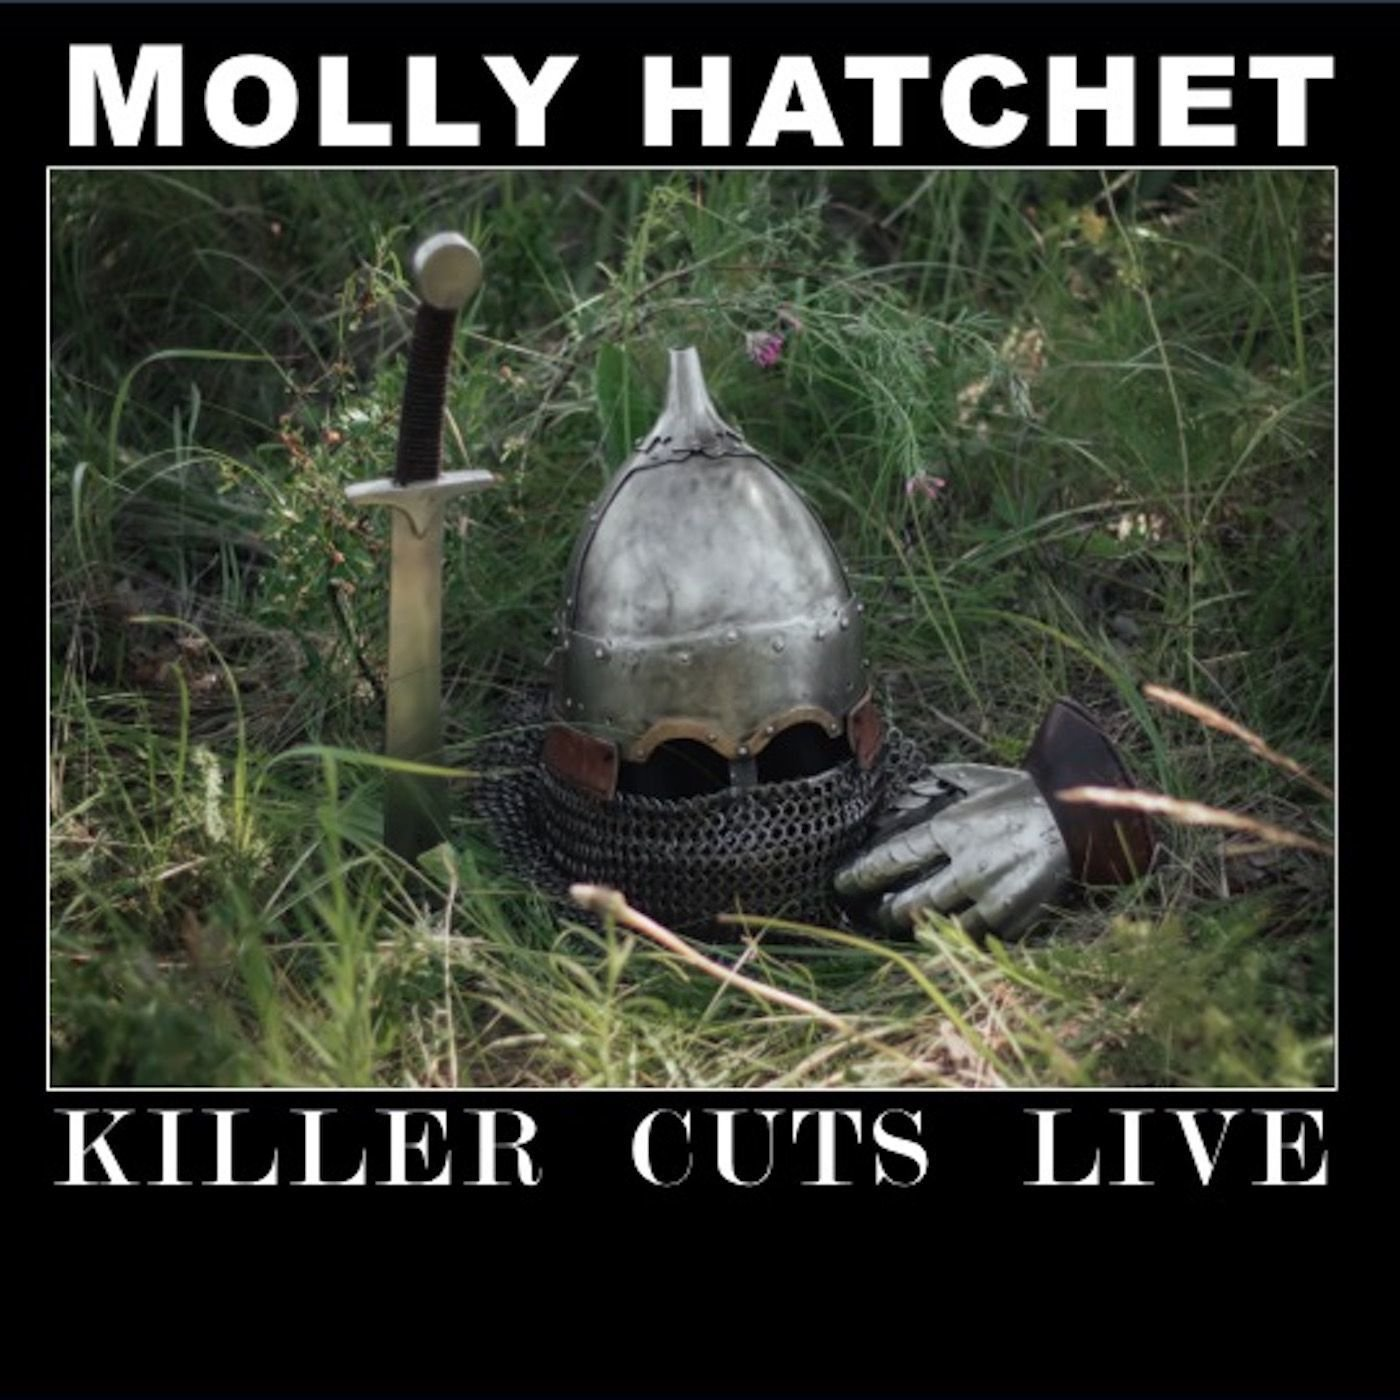 flirting with disaster molly hatchet album cut youtube video download video